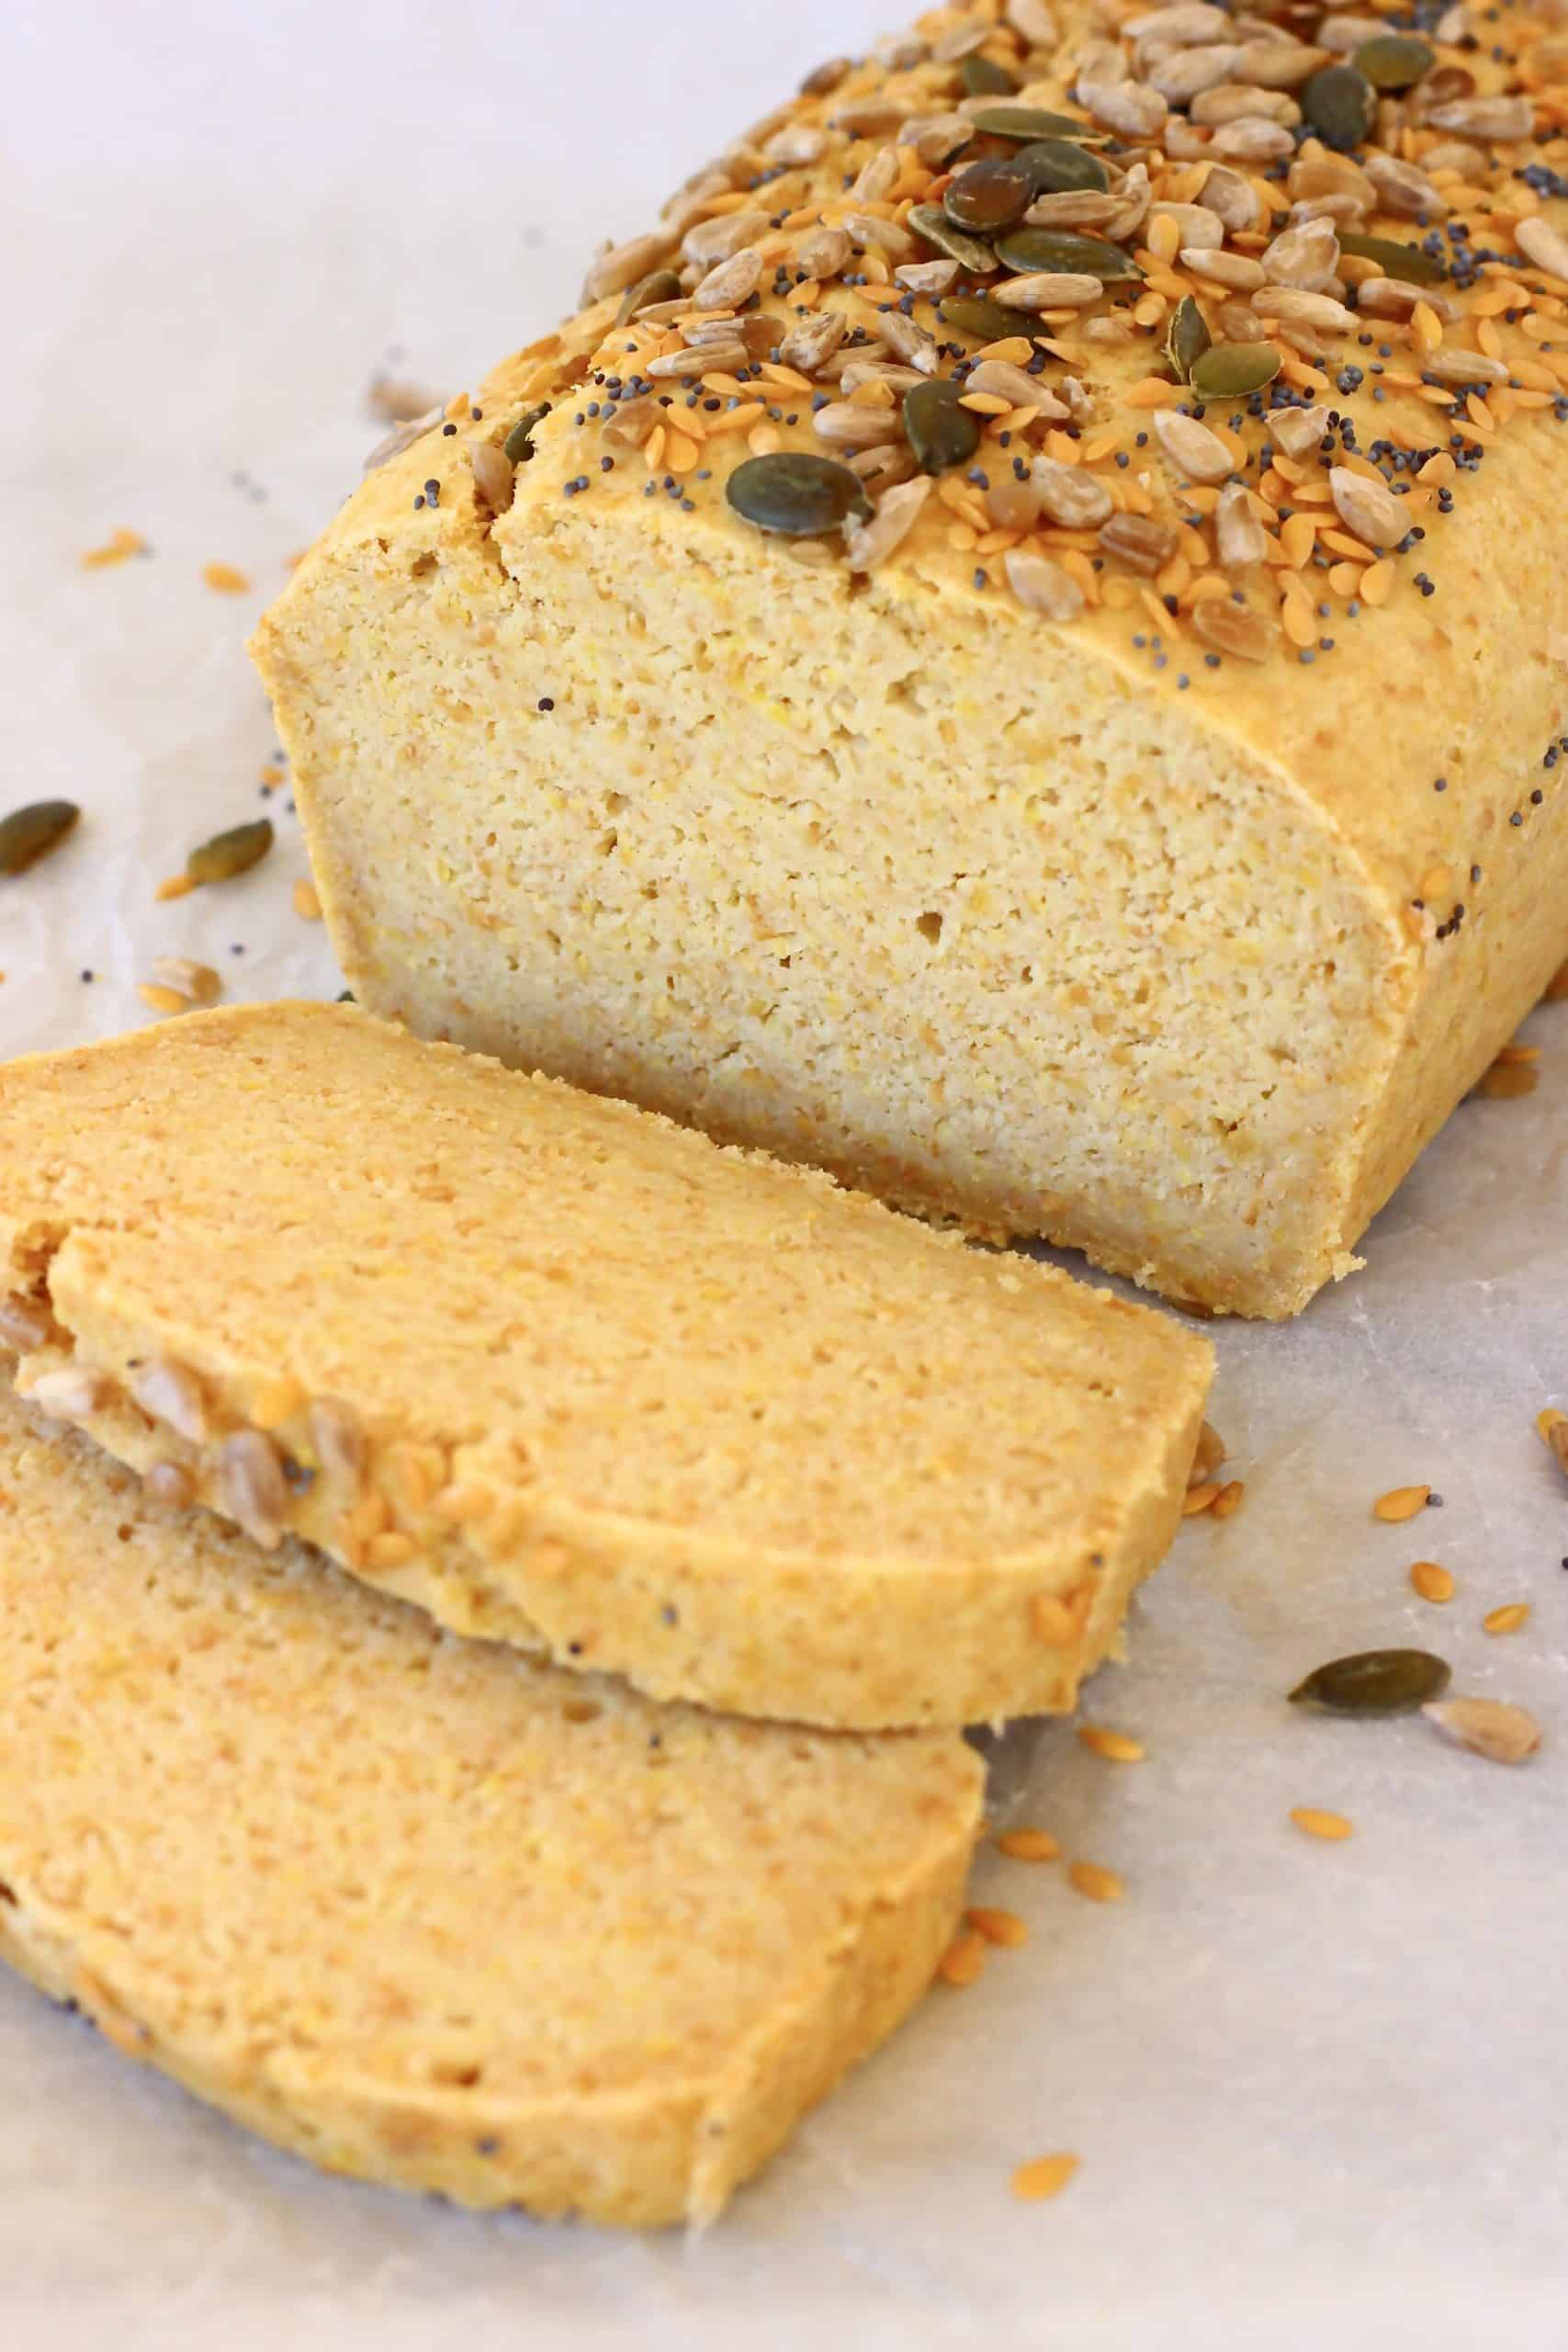 A loaf of flaxseed bread topped with seeds with two slices next to it